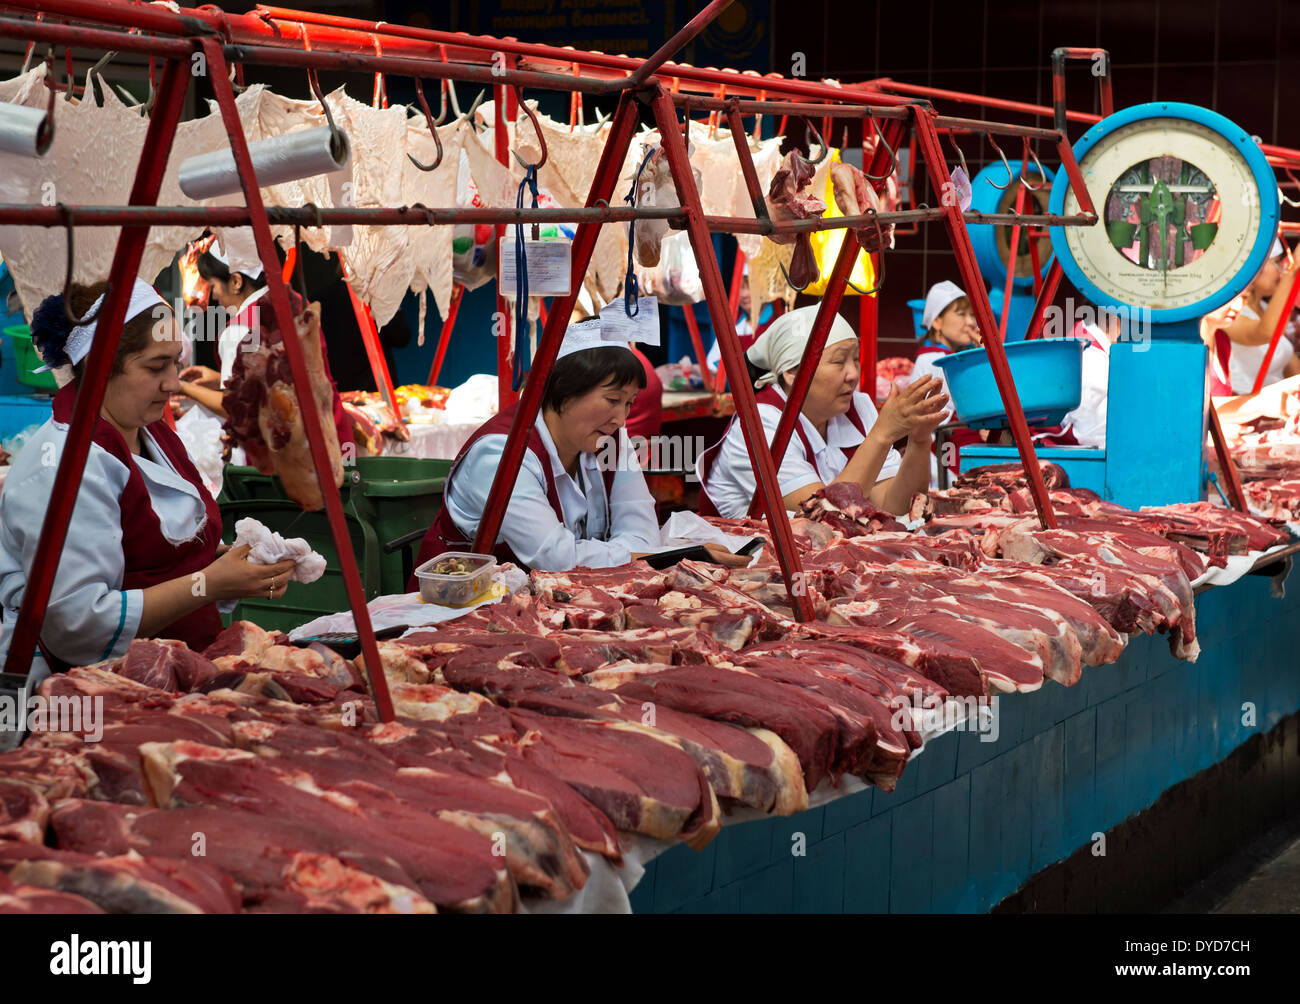 meat market stock images - photo #4